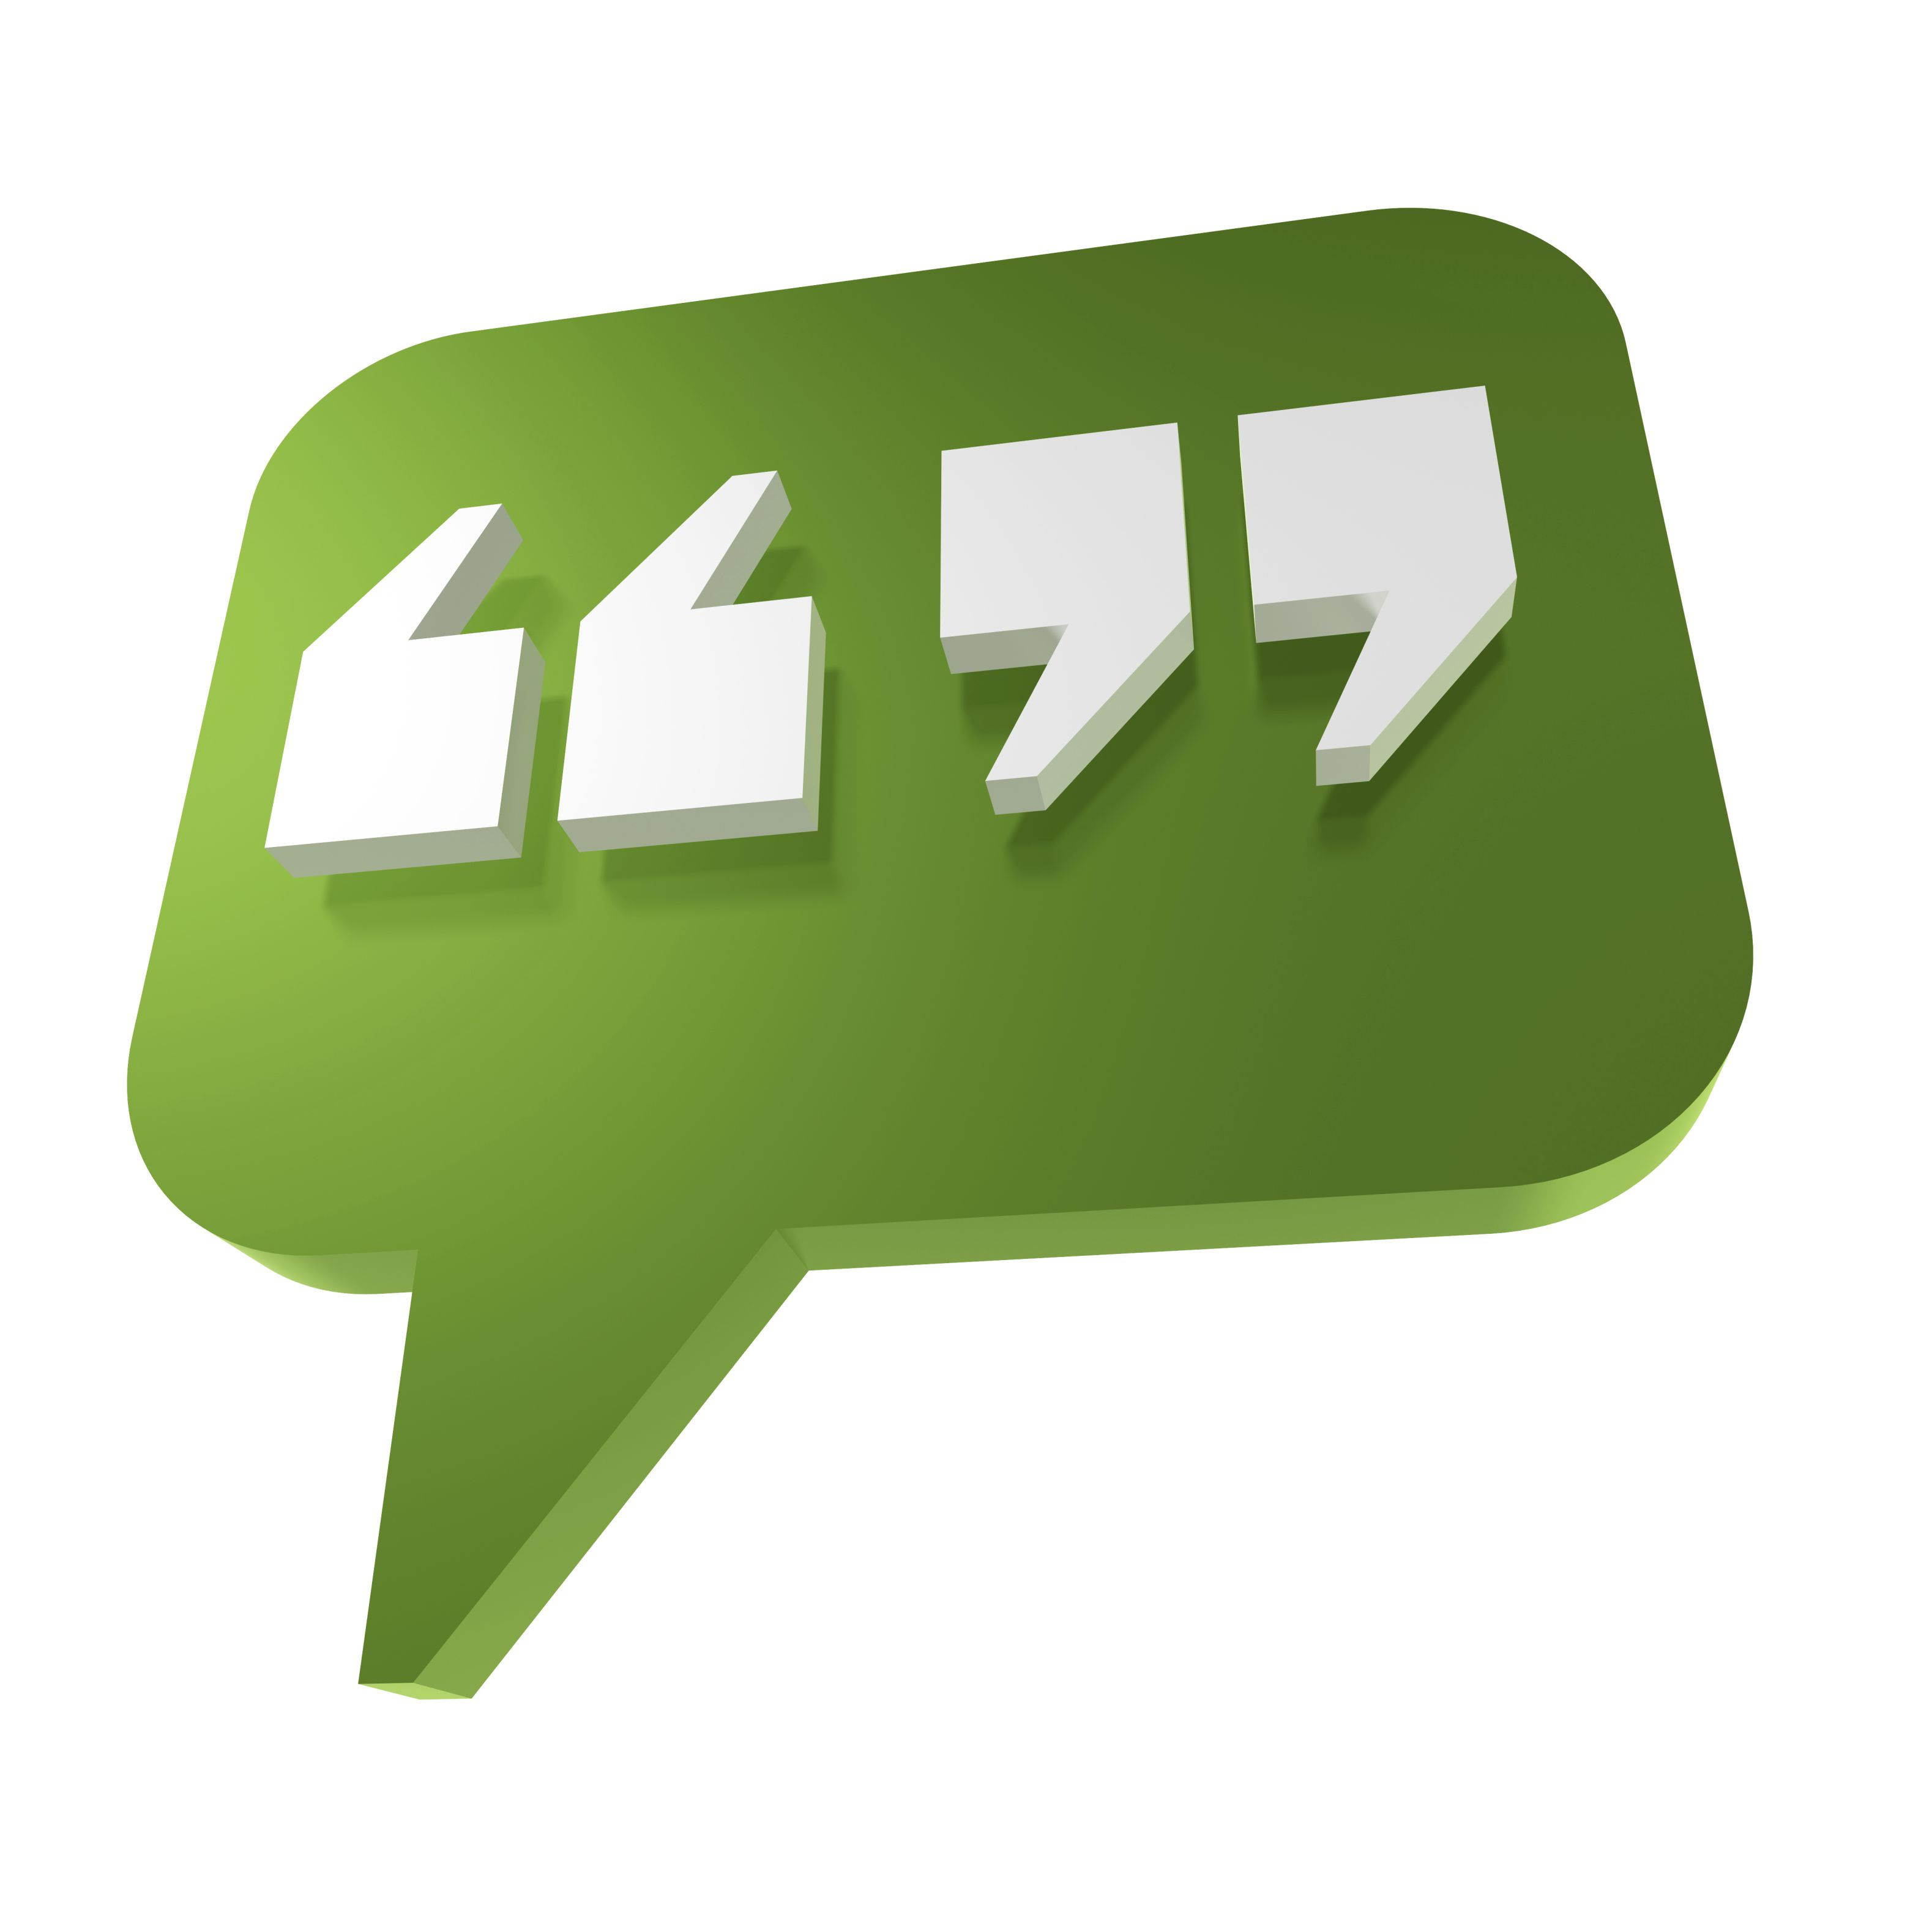 Practice In Using Quotation Marks Correctly